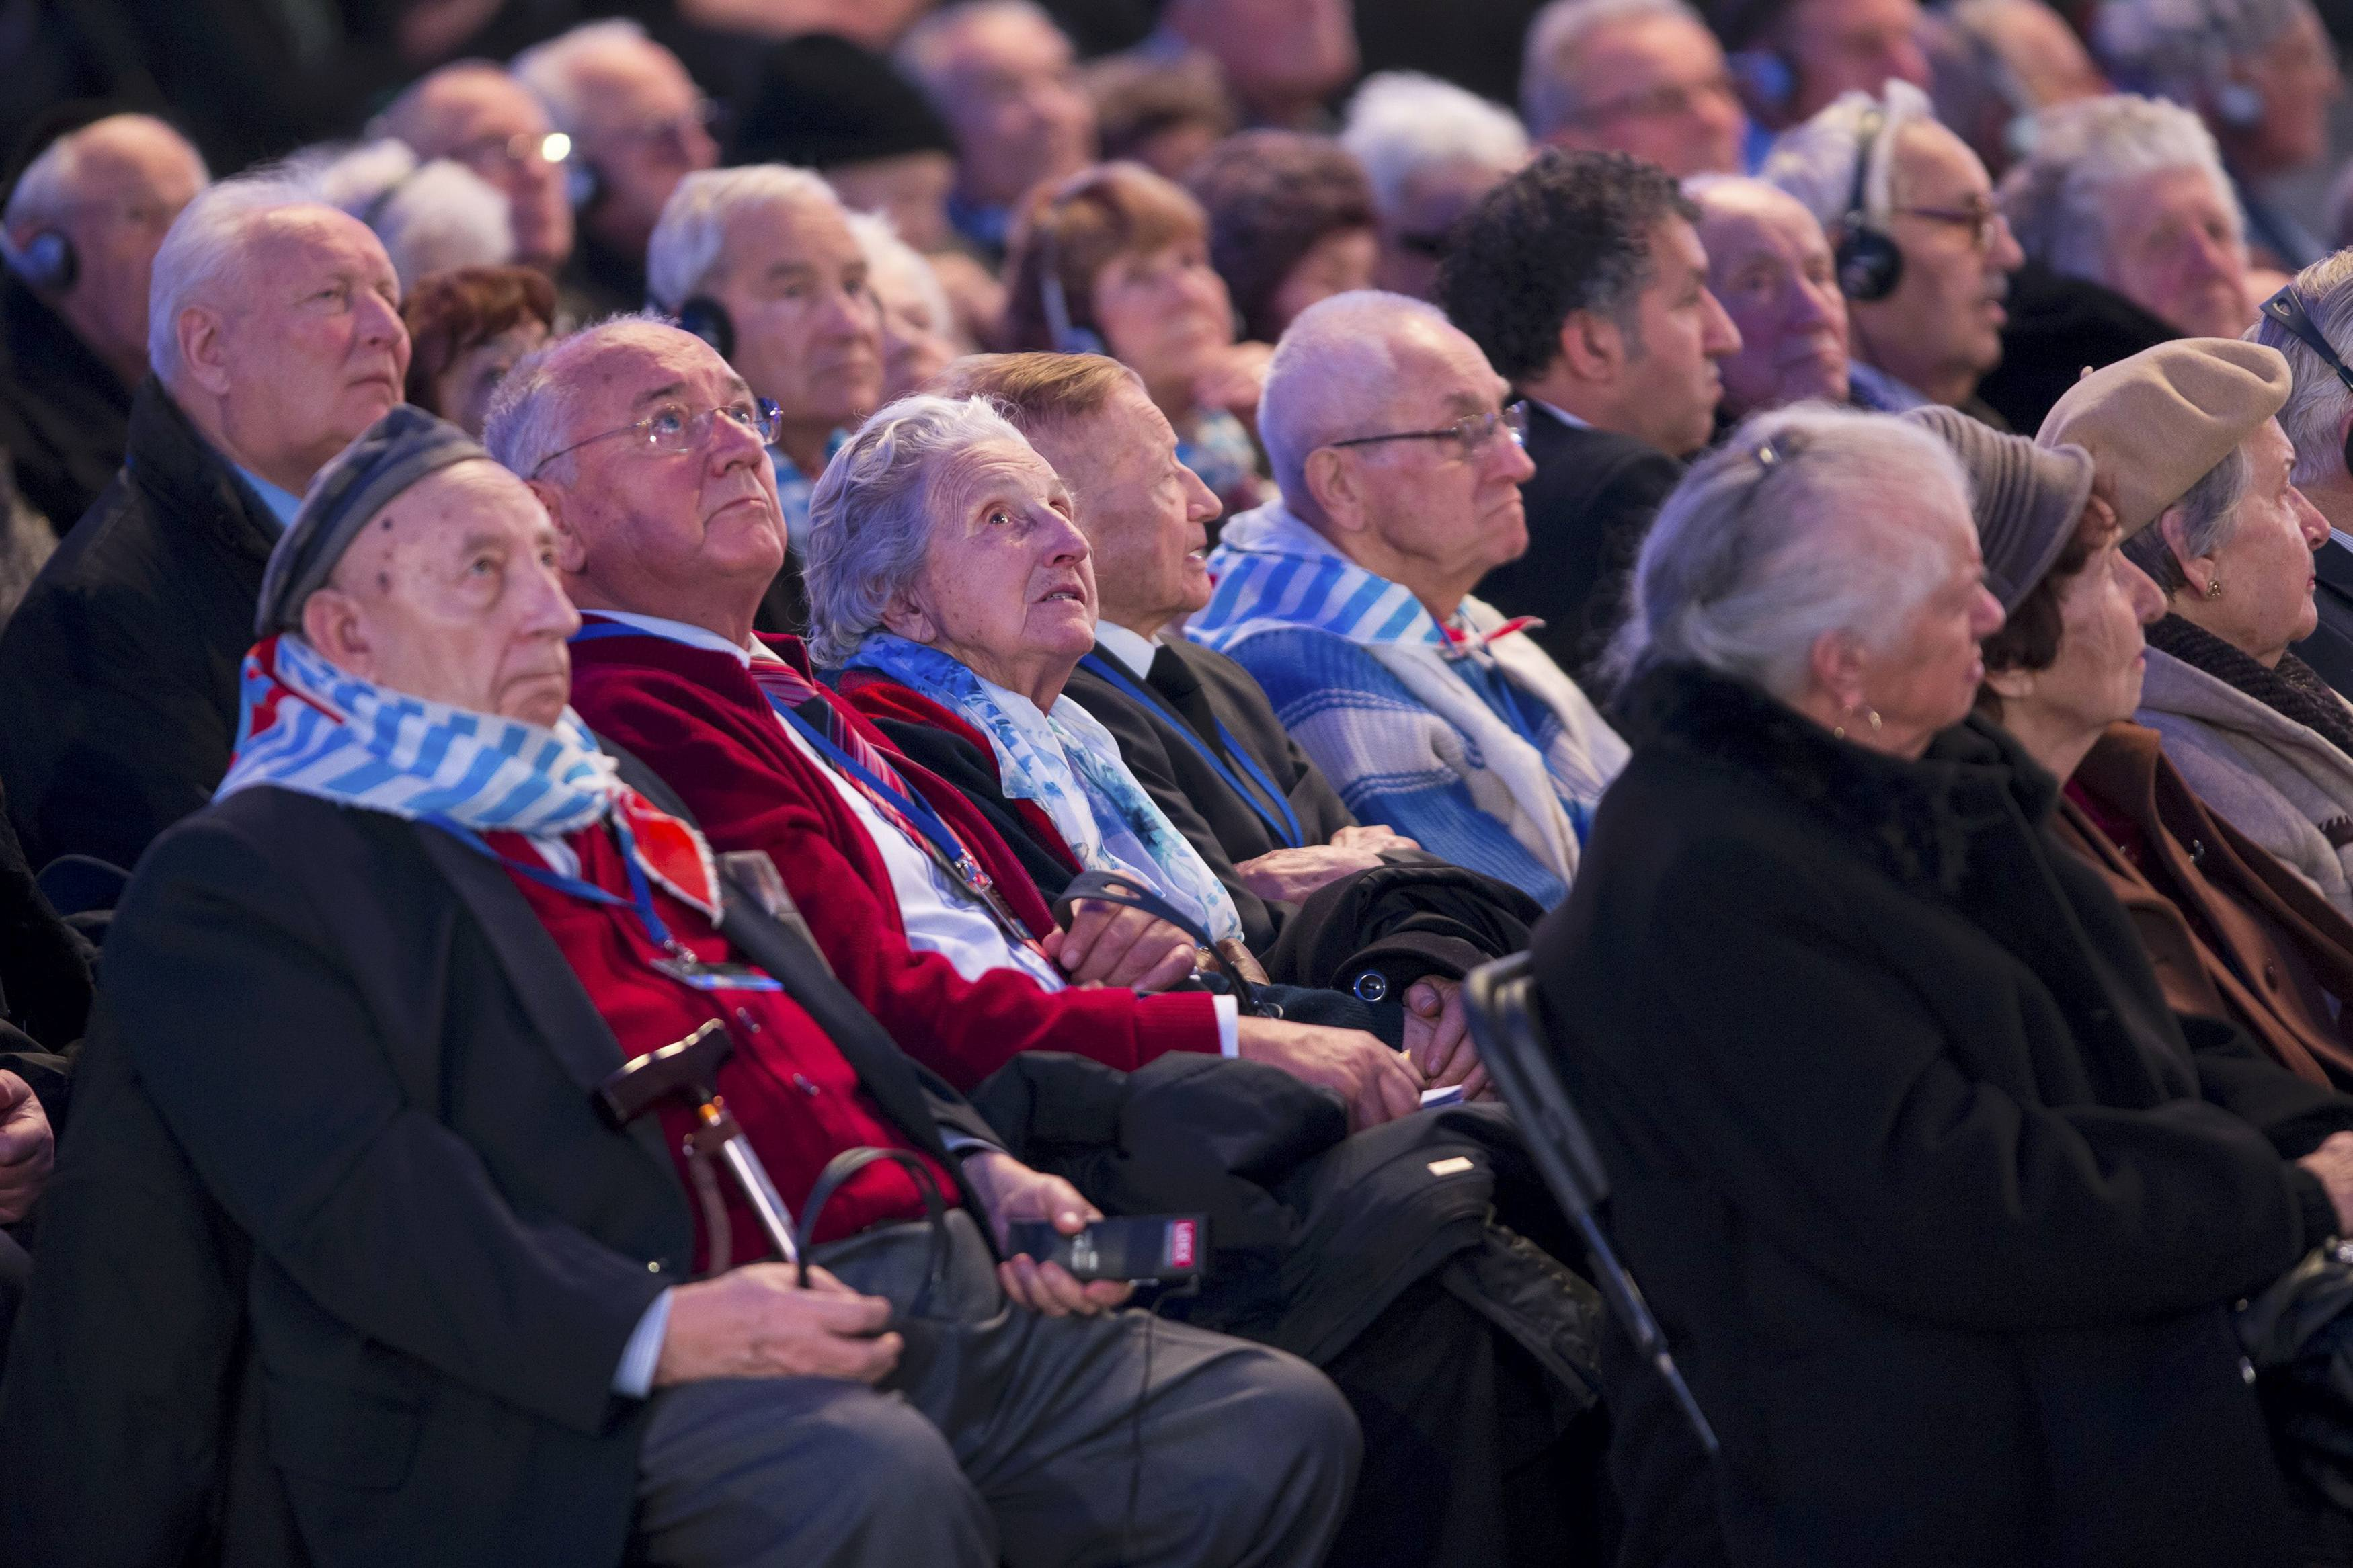 Survivors attend a ceremony on the site of the former Nazi German concentration and extermination camp Auschwitz-Birkenau near Oswiecim January 27, 2015. Ceremonies to mark the 70th anniversary of the liberation of the camp take place on January 27, with some 300 former Auschwitz prisoners taking part in the commemoration event. Nazi Germany built the Auschwitz camp in 1940 as a place of incarceration for the Poles. From 1942, it became the largest site of extermination of the Jews from Europe. In Auschwitz, Nazis killed at least 1.1 million people, mainly Jews, but also Poles, Roma, Soviet prisoners of war and prisoners of other ethnicities. On January 27, 1945 the camp was liberated by the Red Army soldiers. REUTERS/Michal Lepecki/Agencja Gazeta (POLAND - Tags: SOCIETY CONFLICT) THIS IMAGE HAS BEEN SUPPLIED BY A THIRD PARTY. IT IS DISTRIBUTED, EXACTLY AS RECEIVED BY REUTERS, AS A SERVICE TO CLIENTS. POLAND OUT. NO COMMERCIAL OR EDITORIAL SALES IN POLAND.